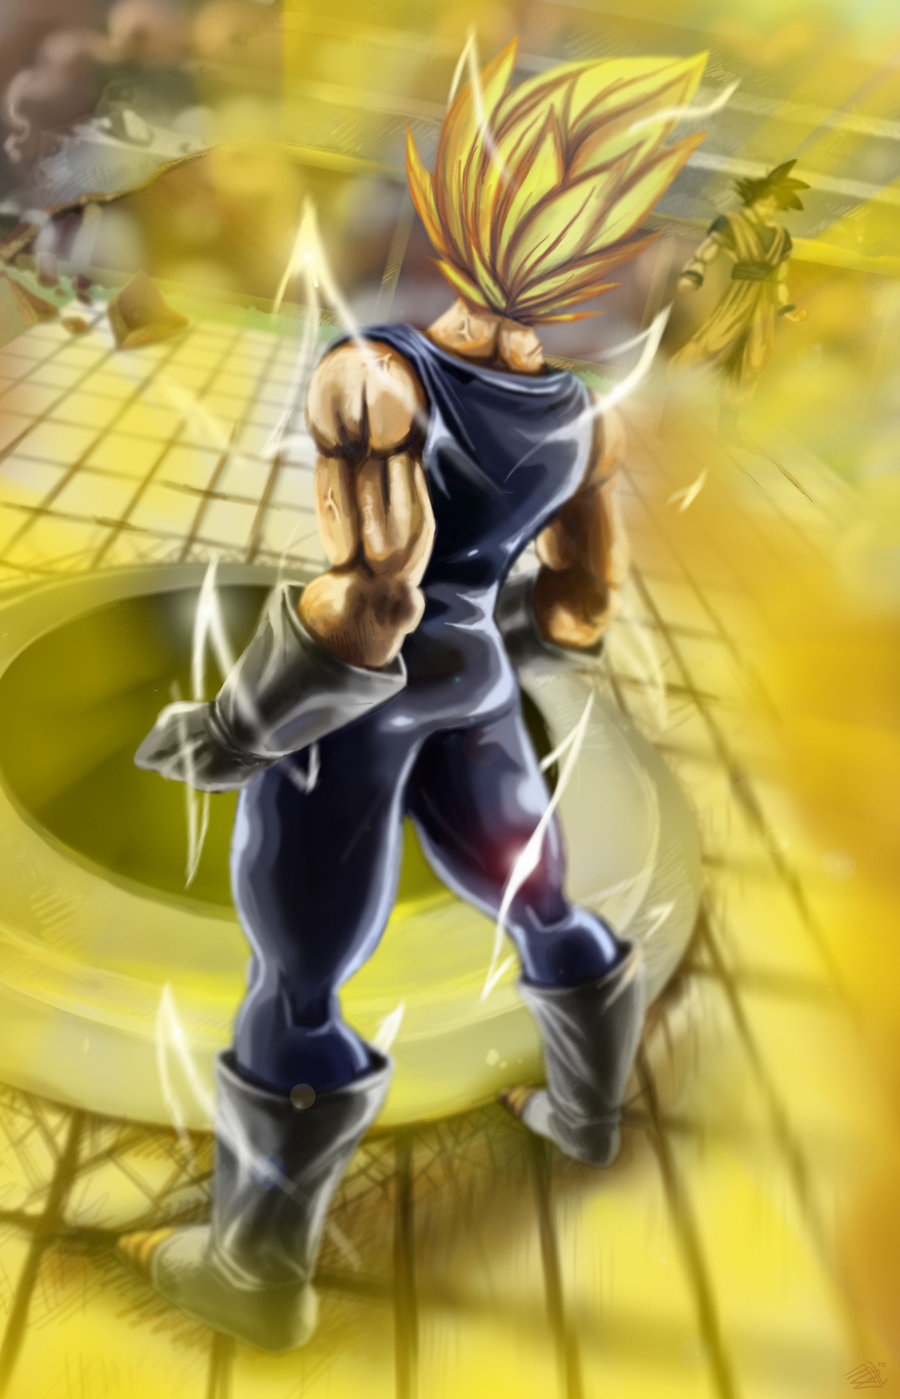 Dragon Ball Z Images Majin Vegeta HD Wallpaper And Background Photos